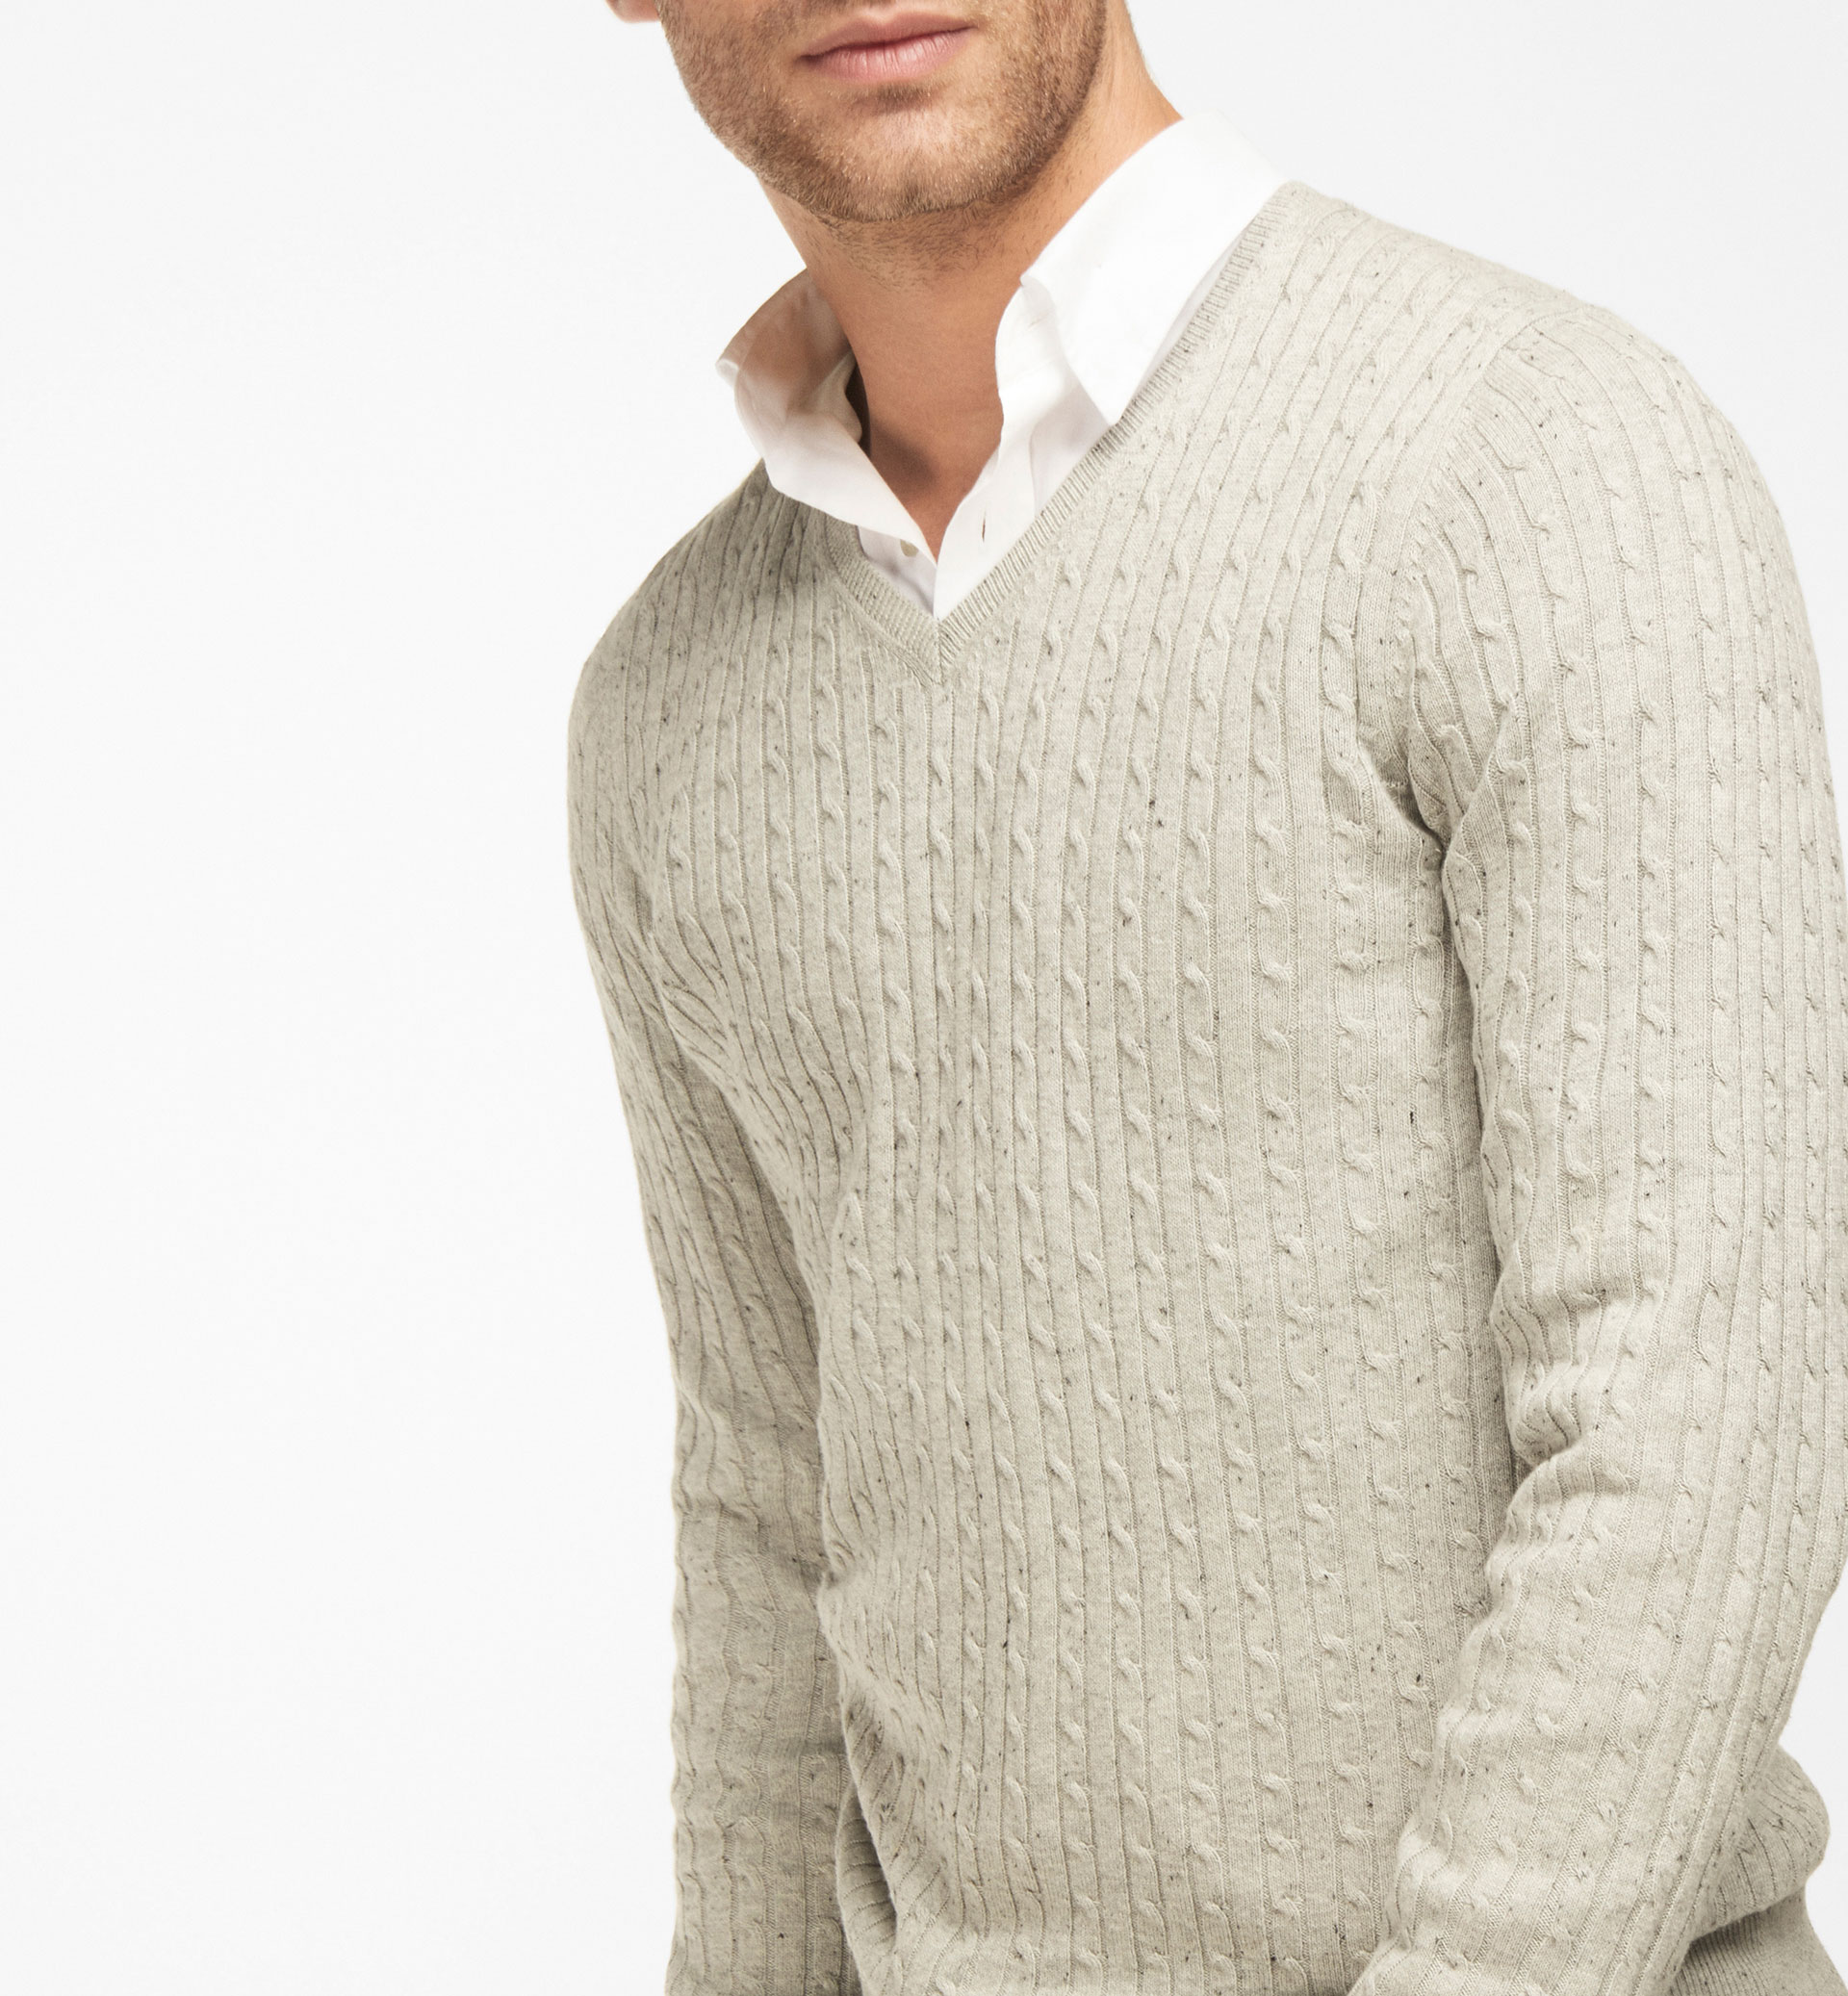 CABLE KNIT V-NECK SWEATER